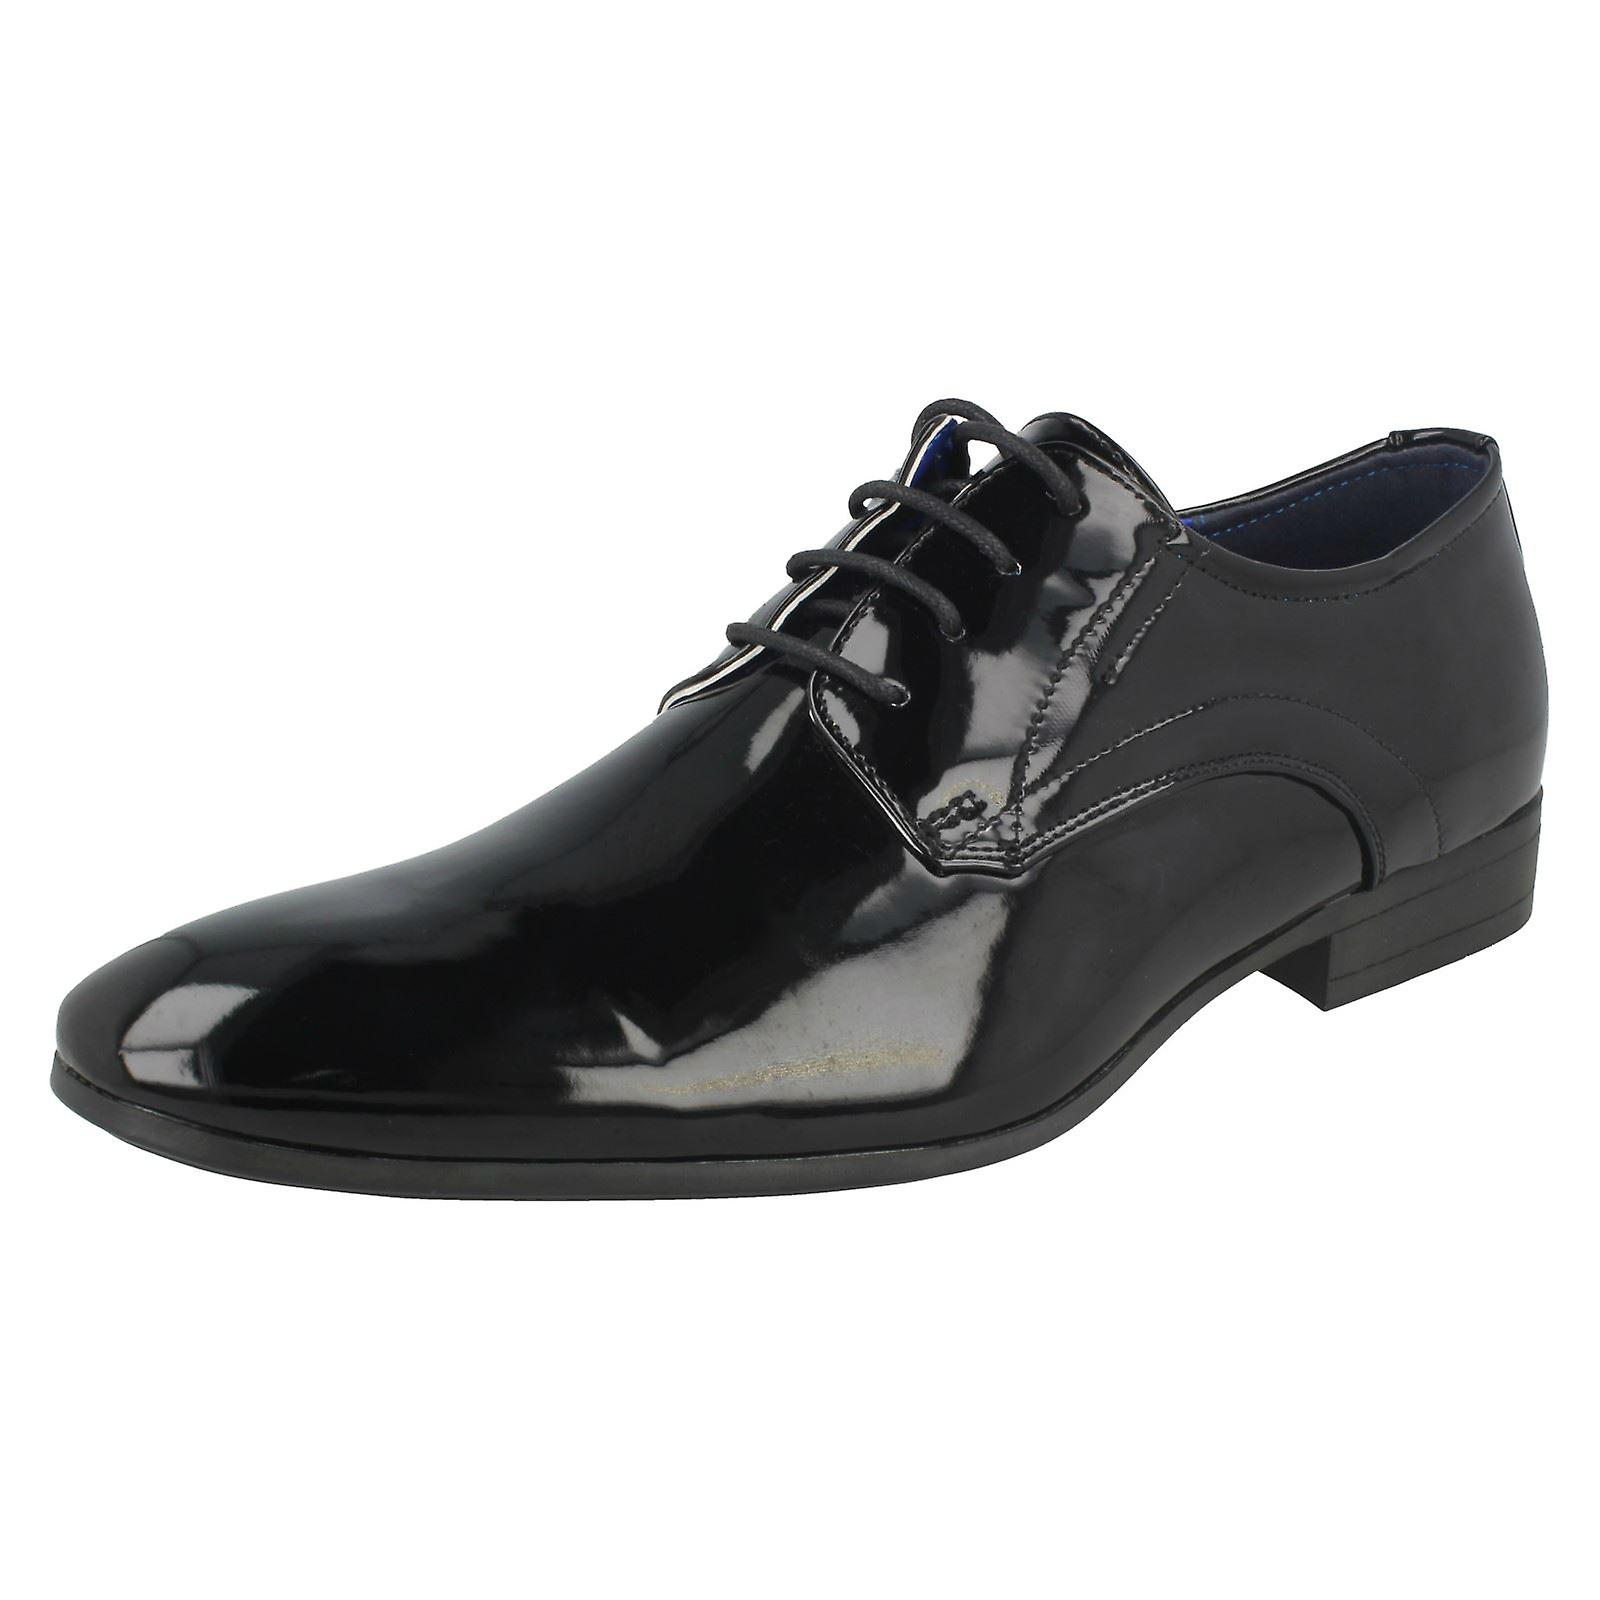 Mens Occasion Malvern Occasion Mens Wear Smart Shoes A2136:Man's/Woman's:Atmospheric Simplicity 0c68f7